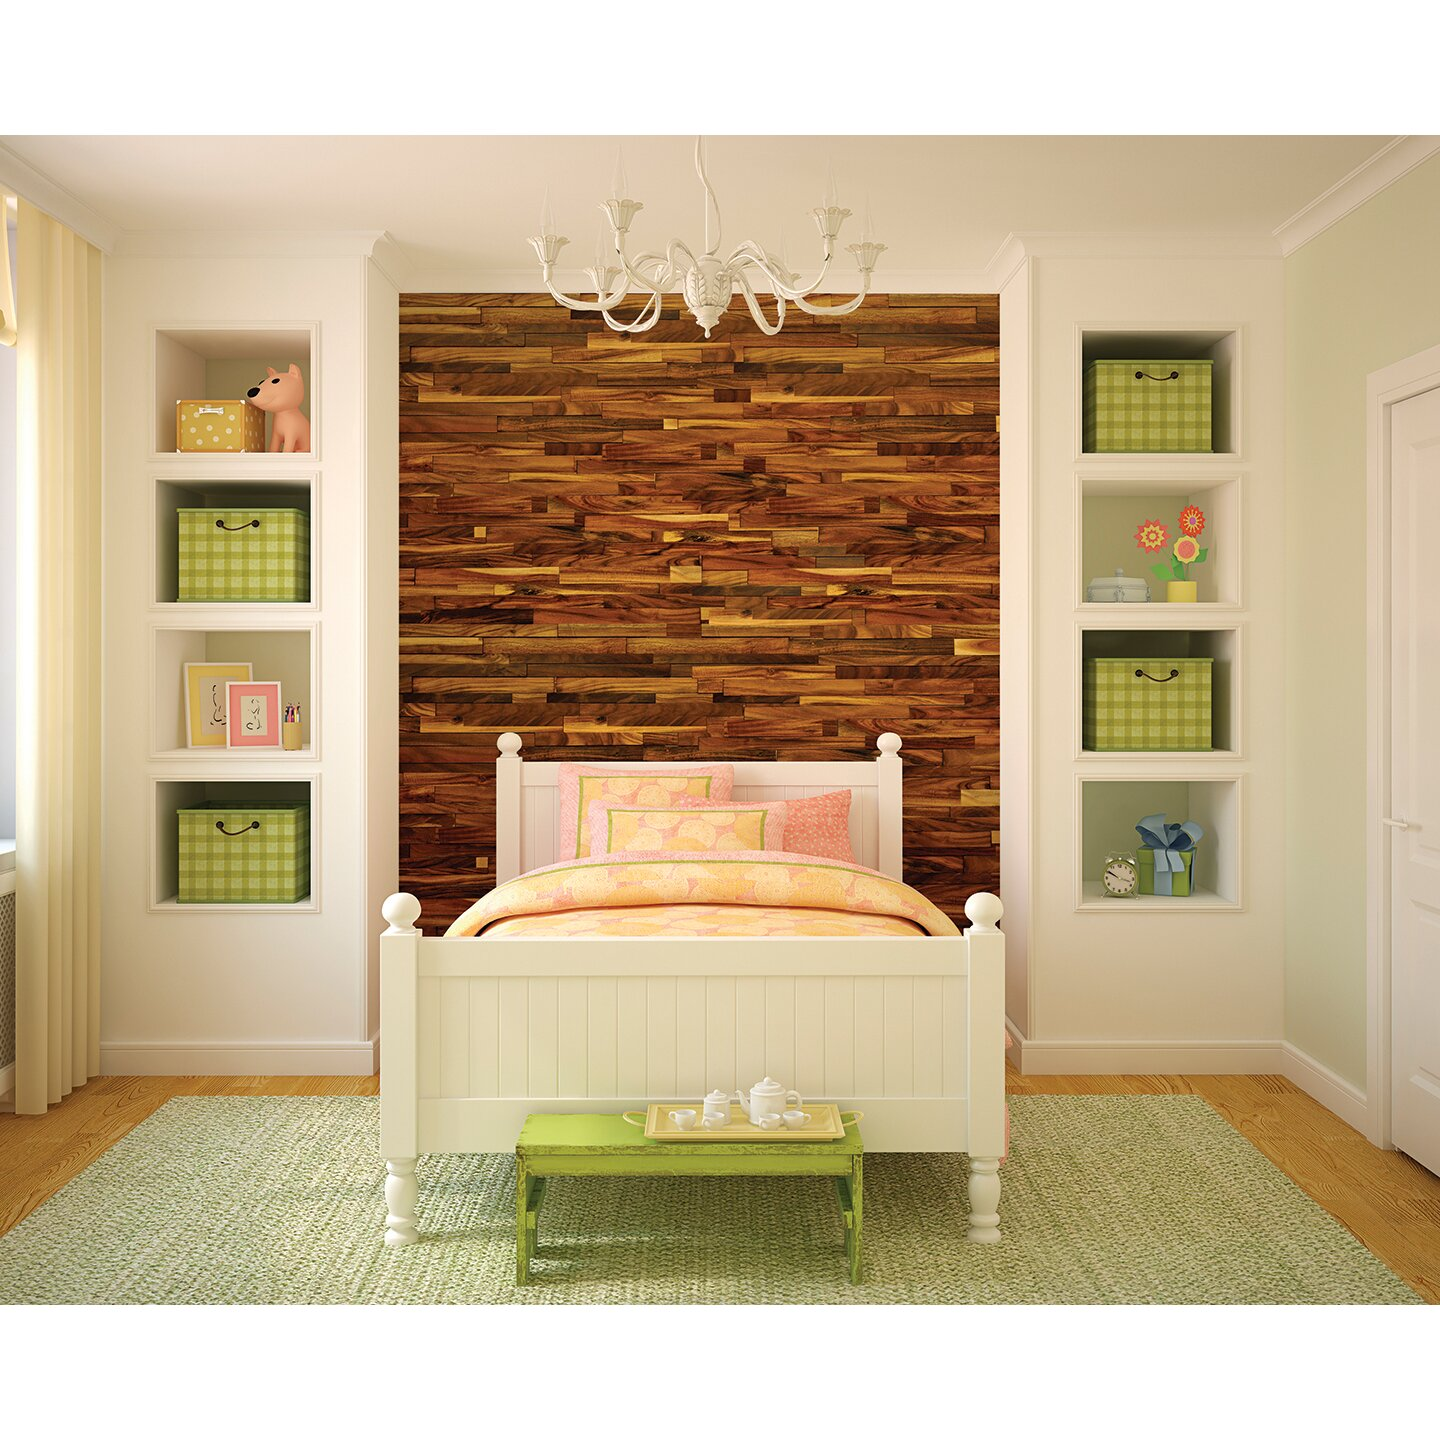 Wonderful image of  Improvement Flooring Wood Paneling Albero Valley SKU: ABVY3251 with #763D1A color and 1440x1440 pixels